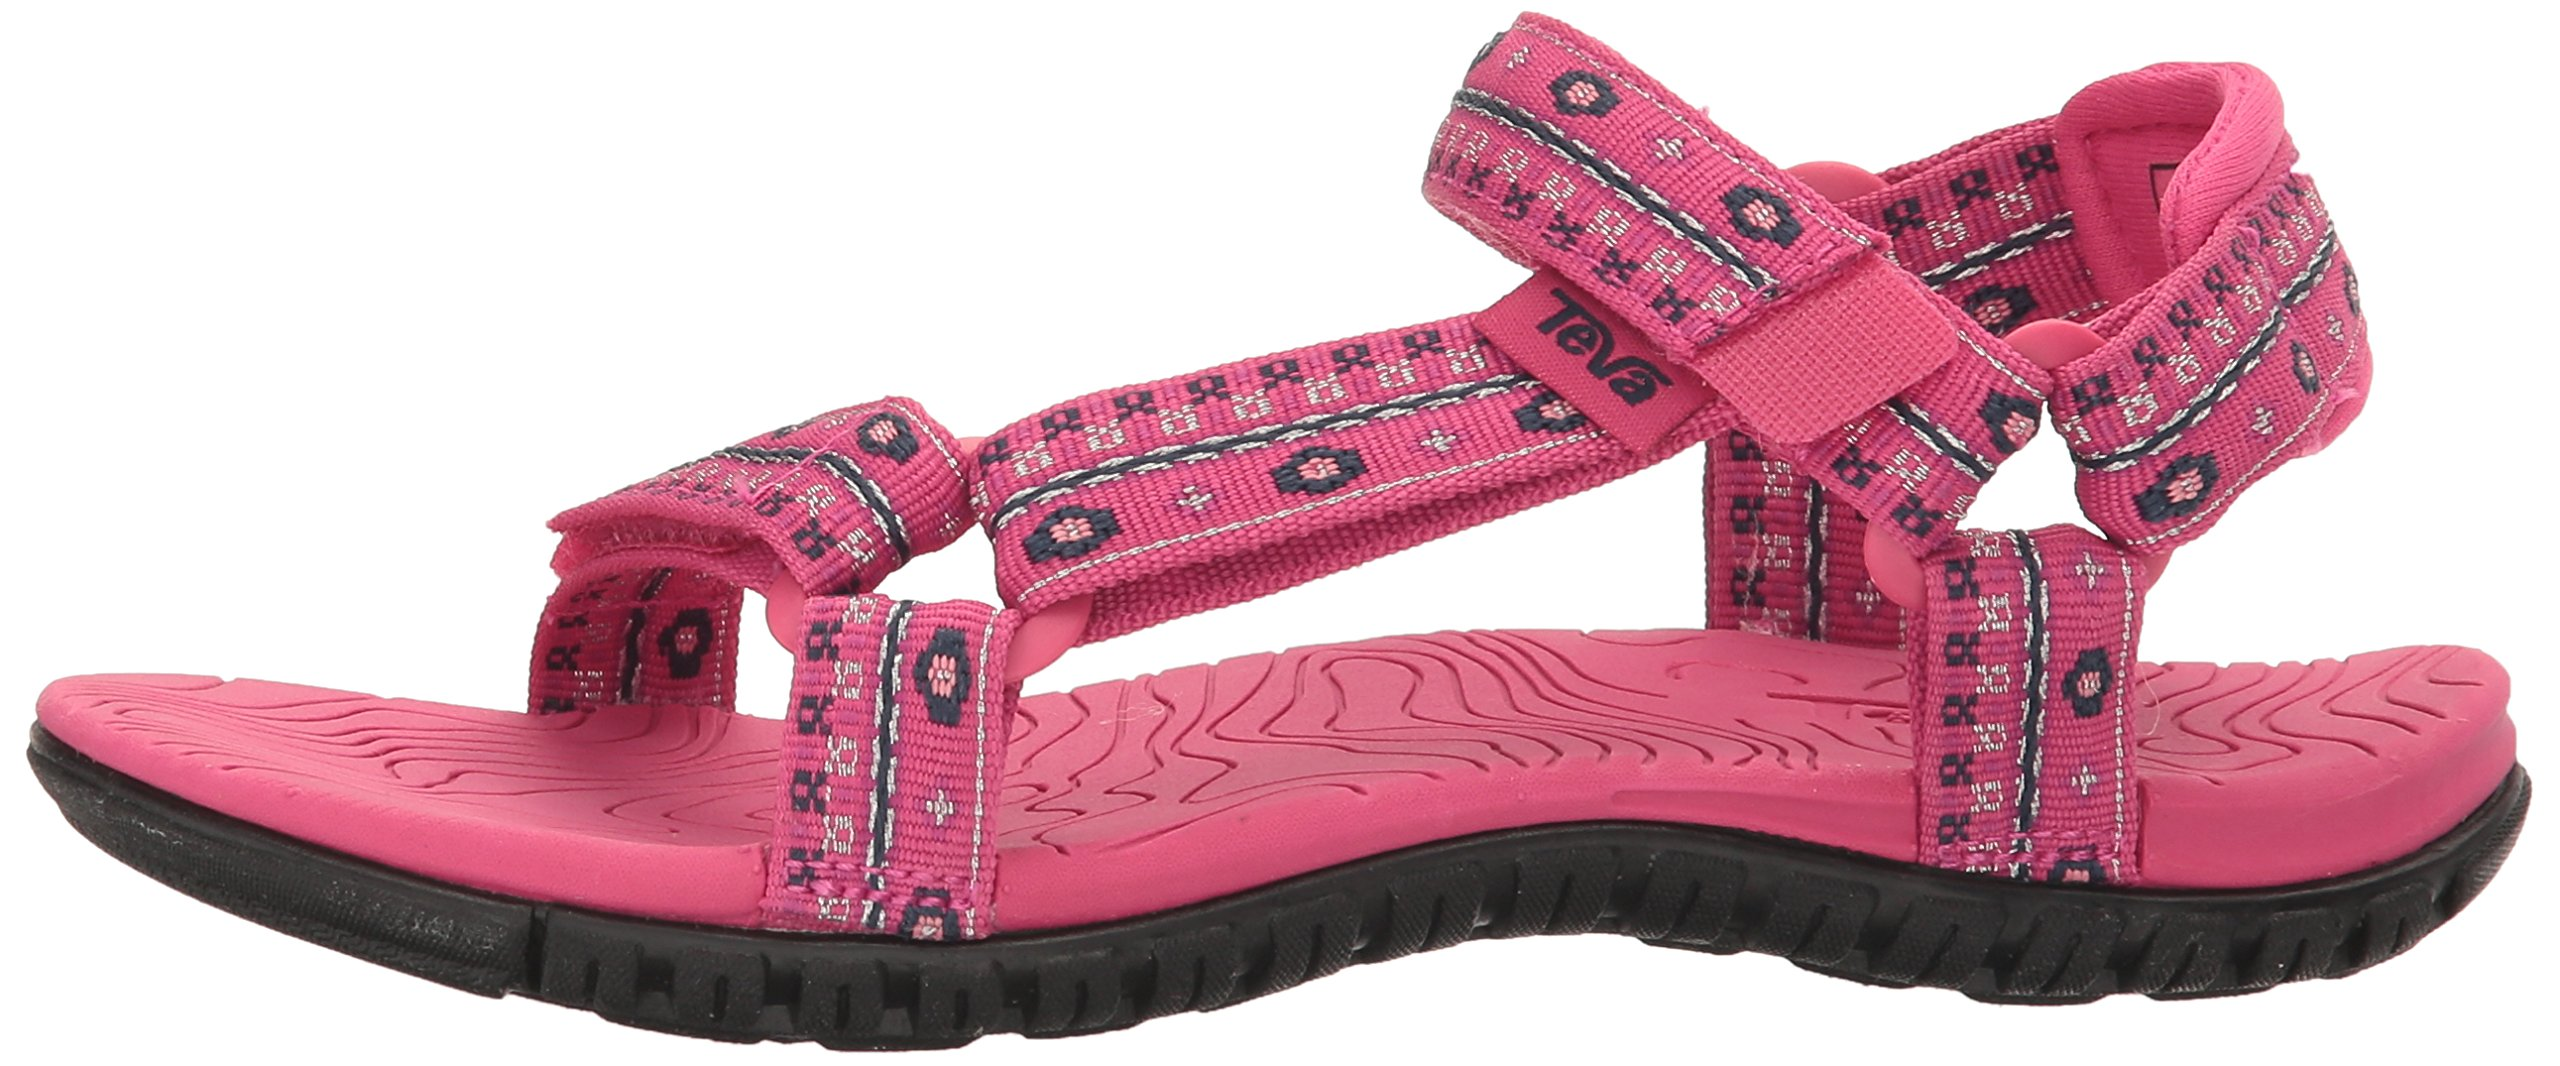 Teva Girls' Hurricane 3 Sandal, Hippie Raspberry, 6 M US Toddler by Teva (Image #5)